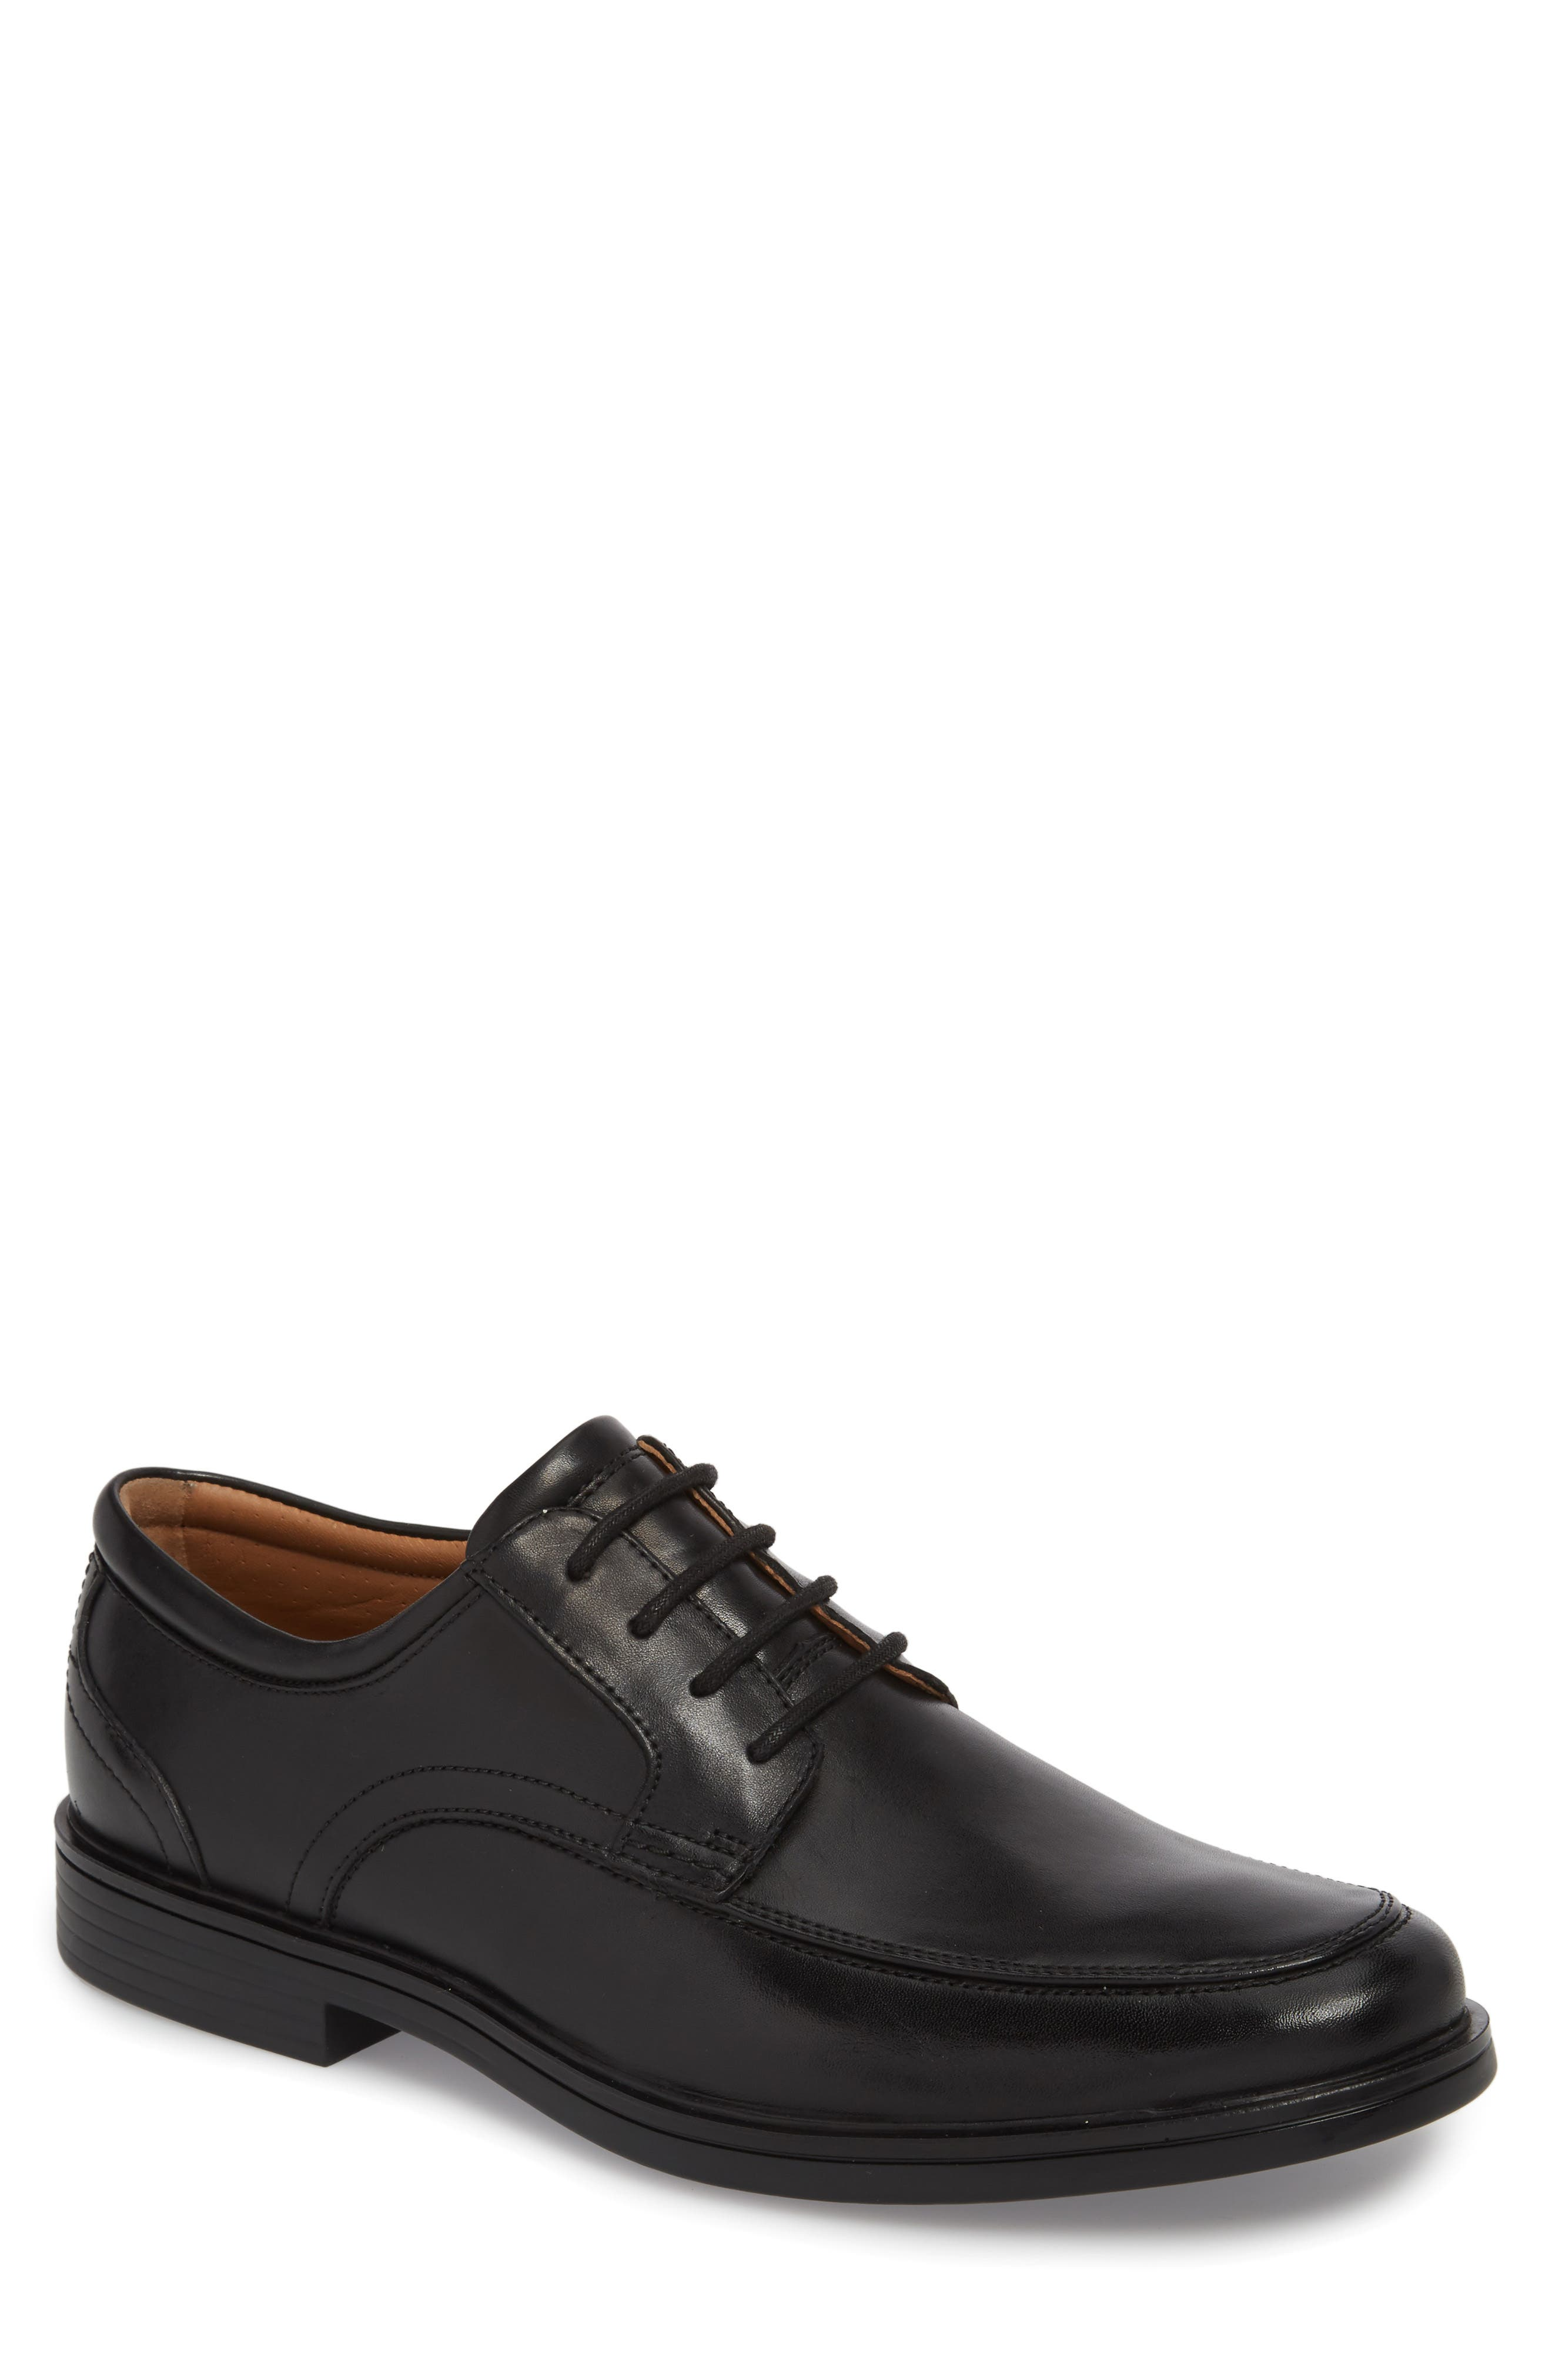 Unaldric Moc Toe Derby,                         Main,                         color, Black Leather